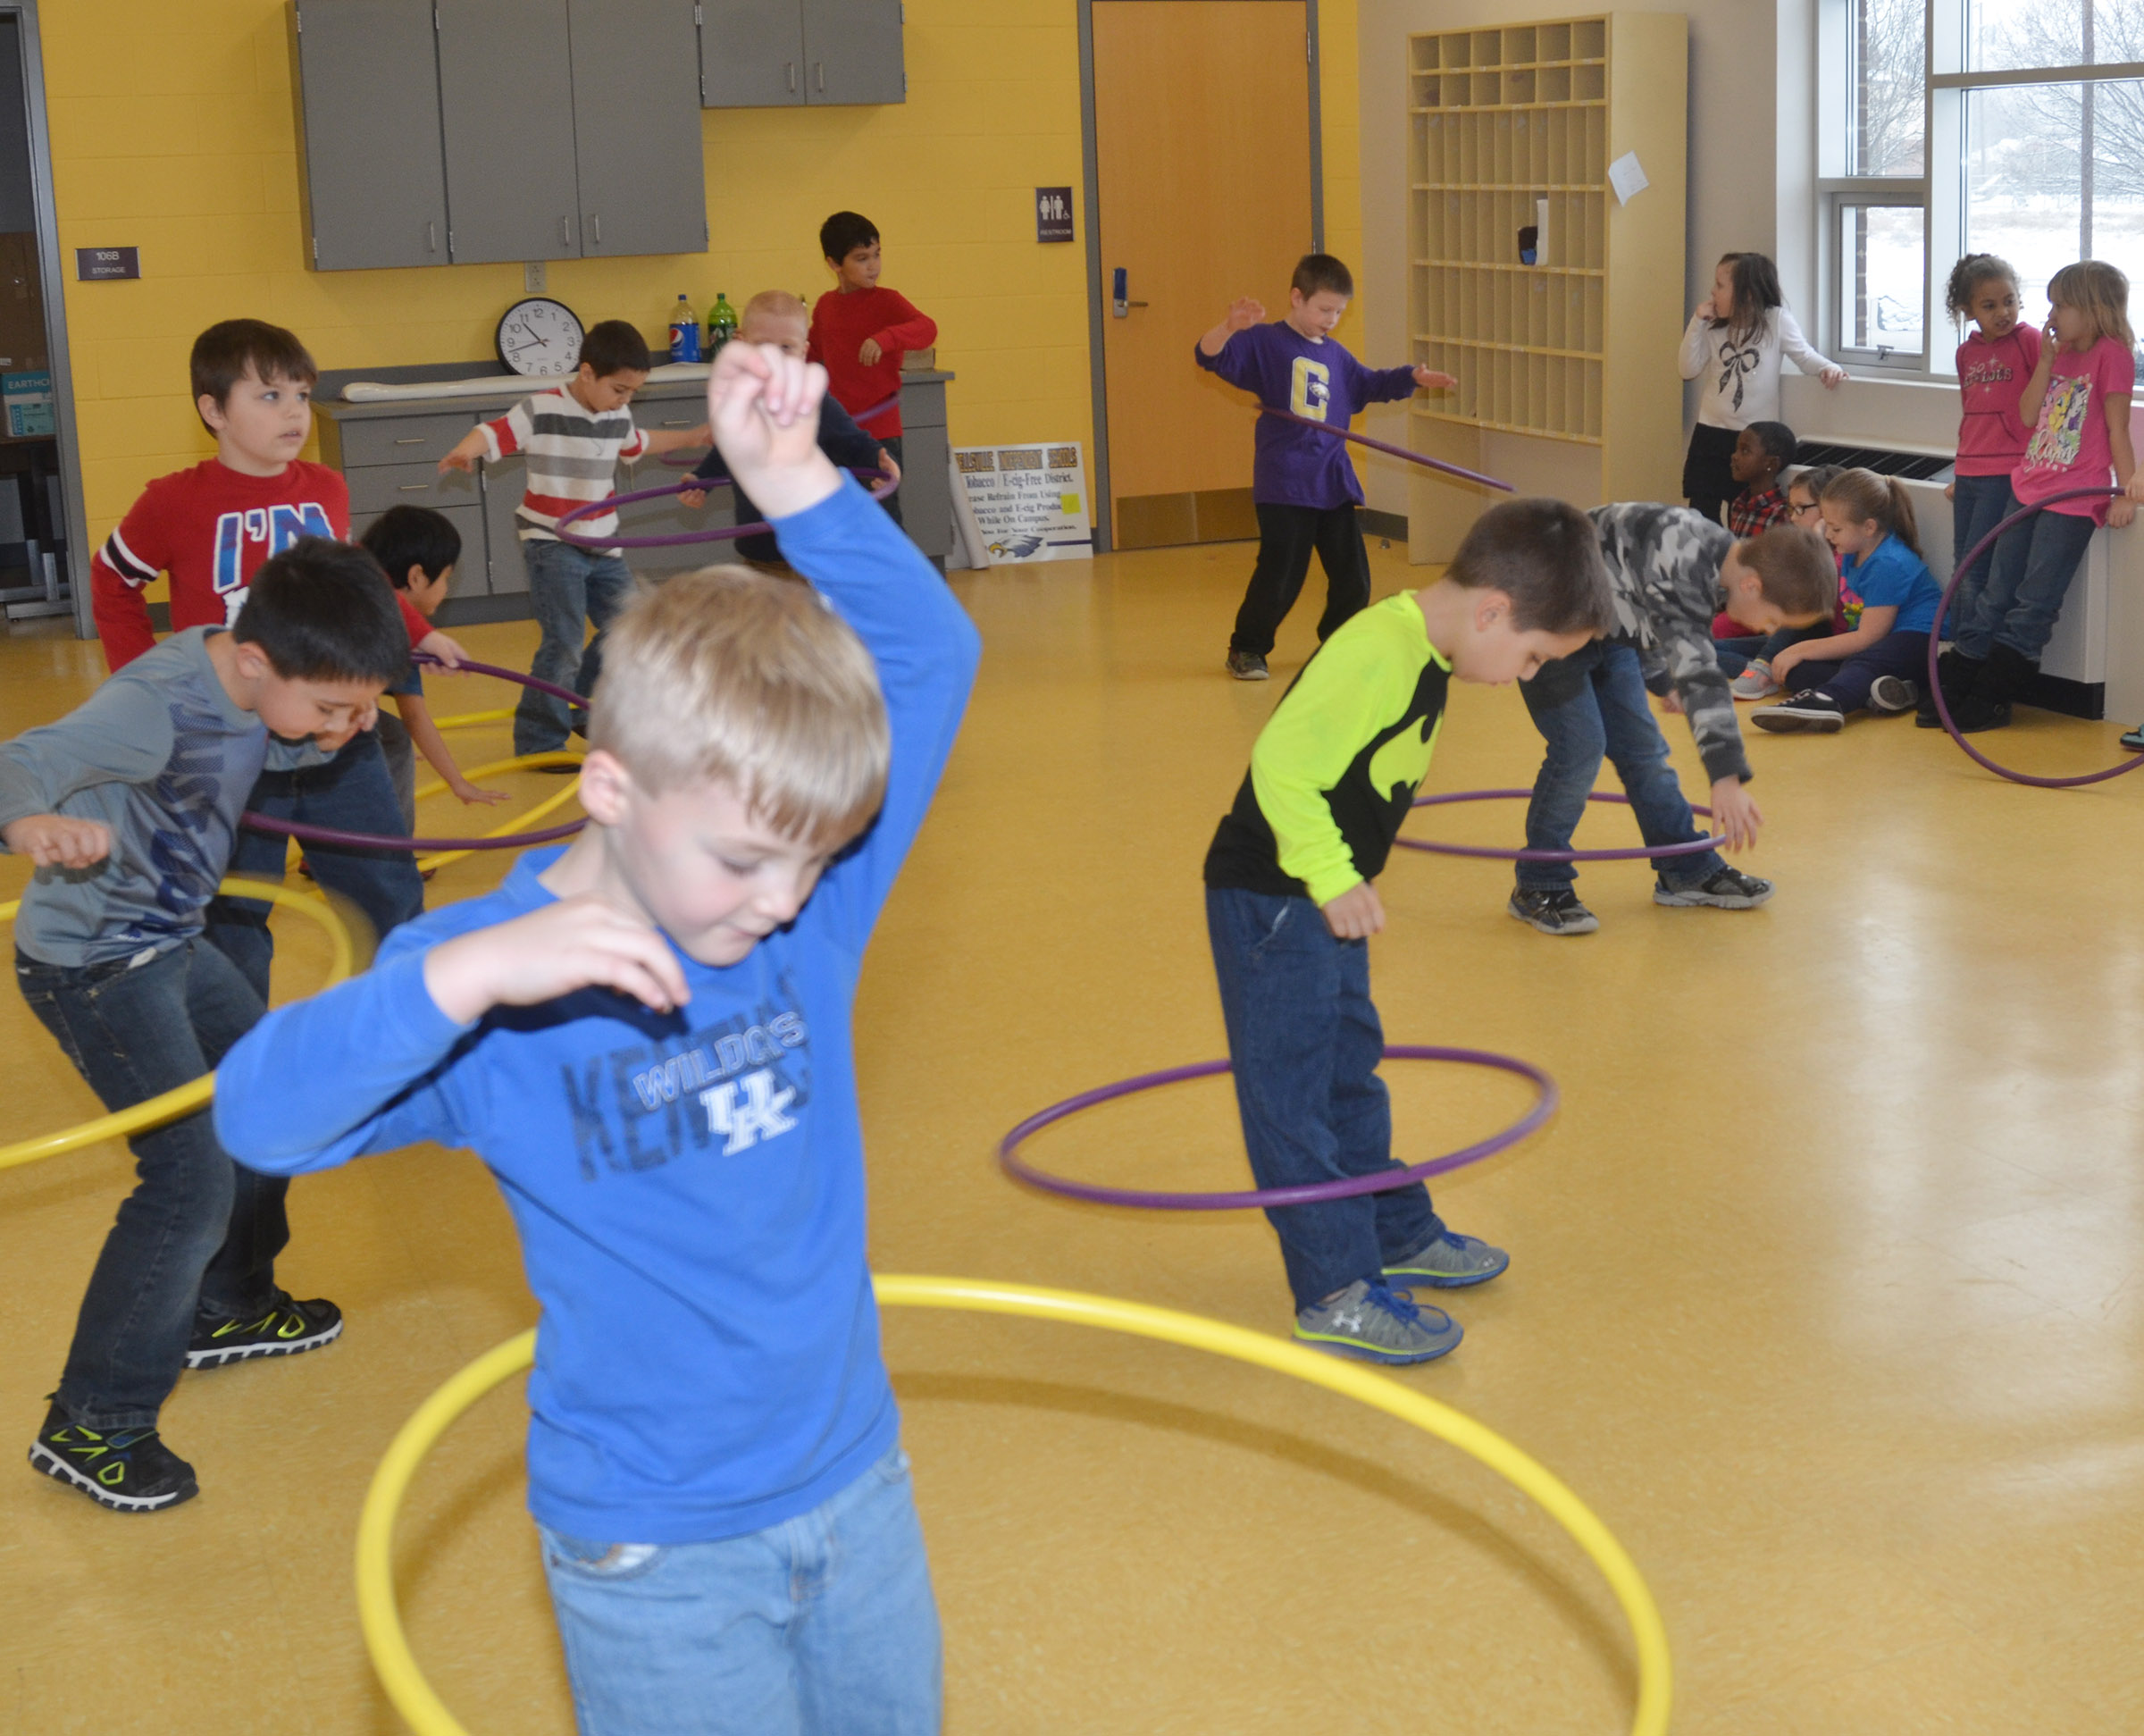 CES first grader Samuel Scharbrough and his classmates see how long they can hula hoop.